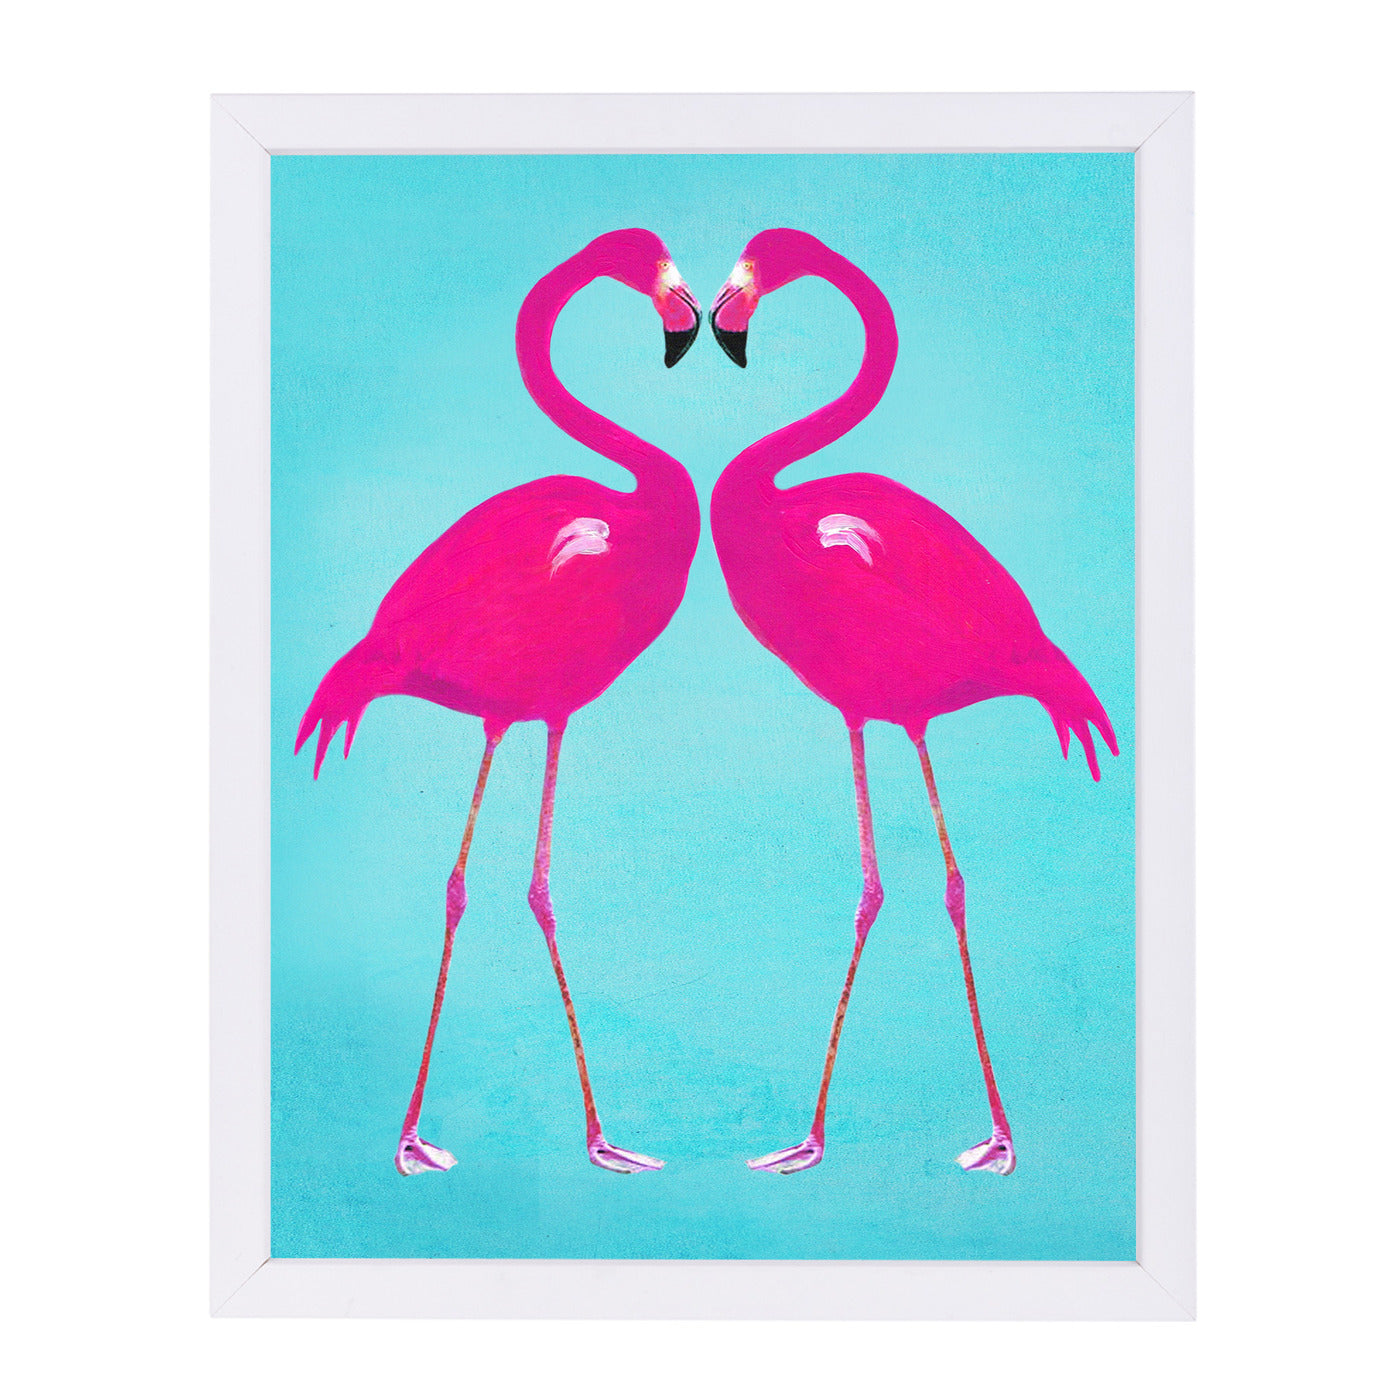 Flamingo Heart By Coco De Paris - White Framed Print - Wall Art - Americanflat